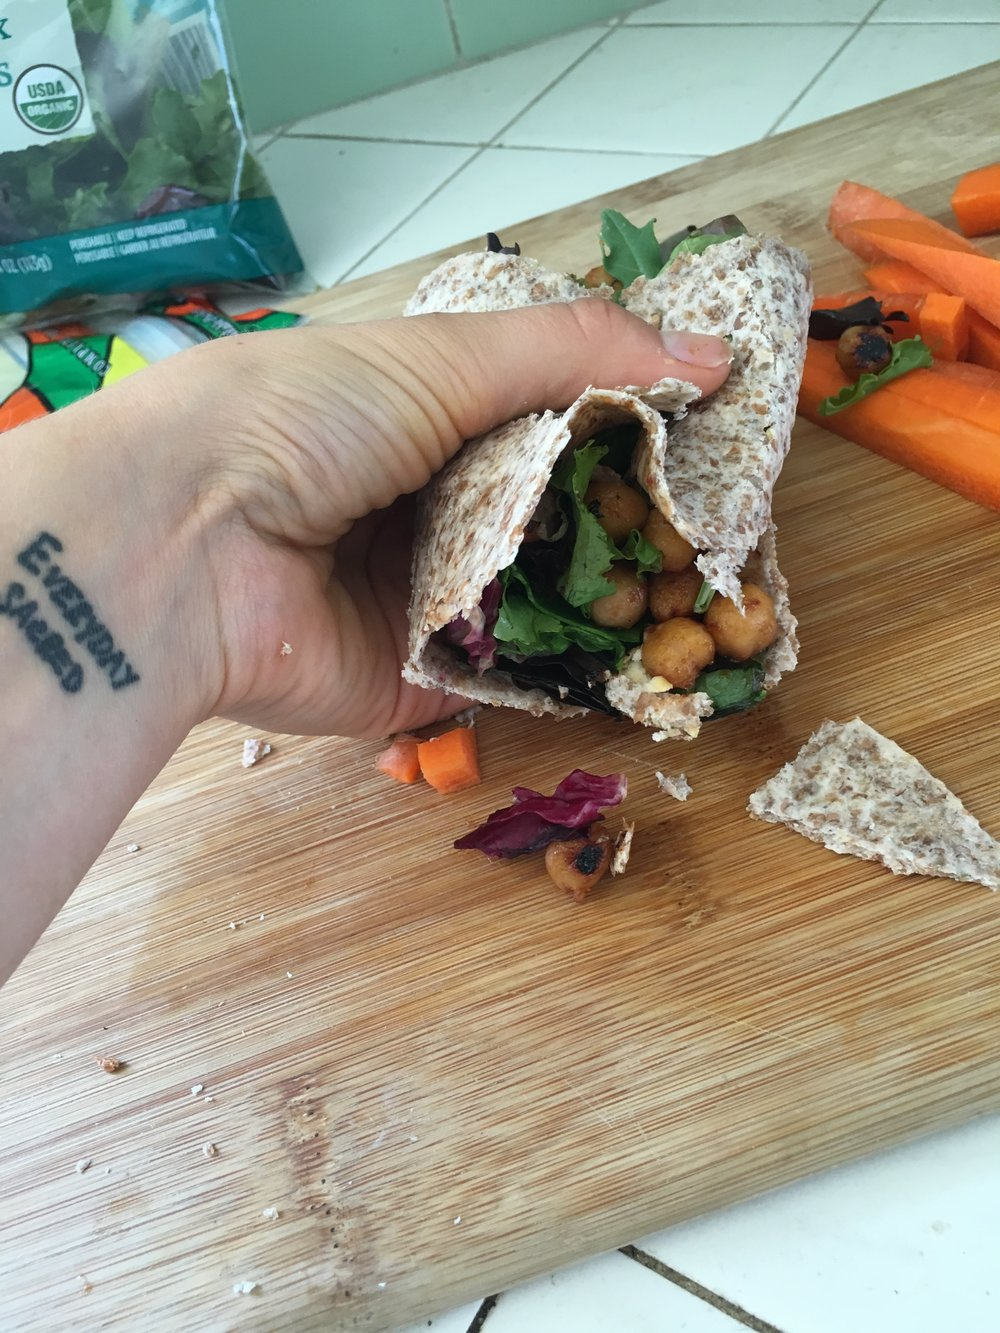 Ezekiel wraps are very crumbly, next time I will not be using them.